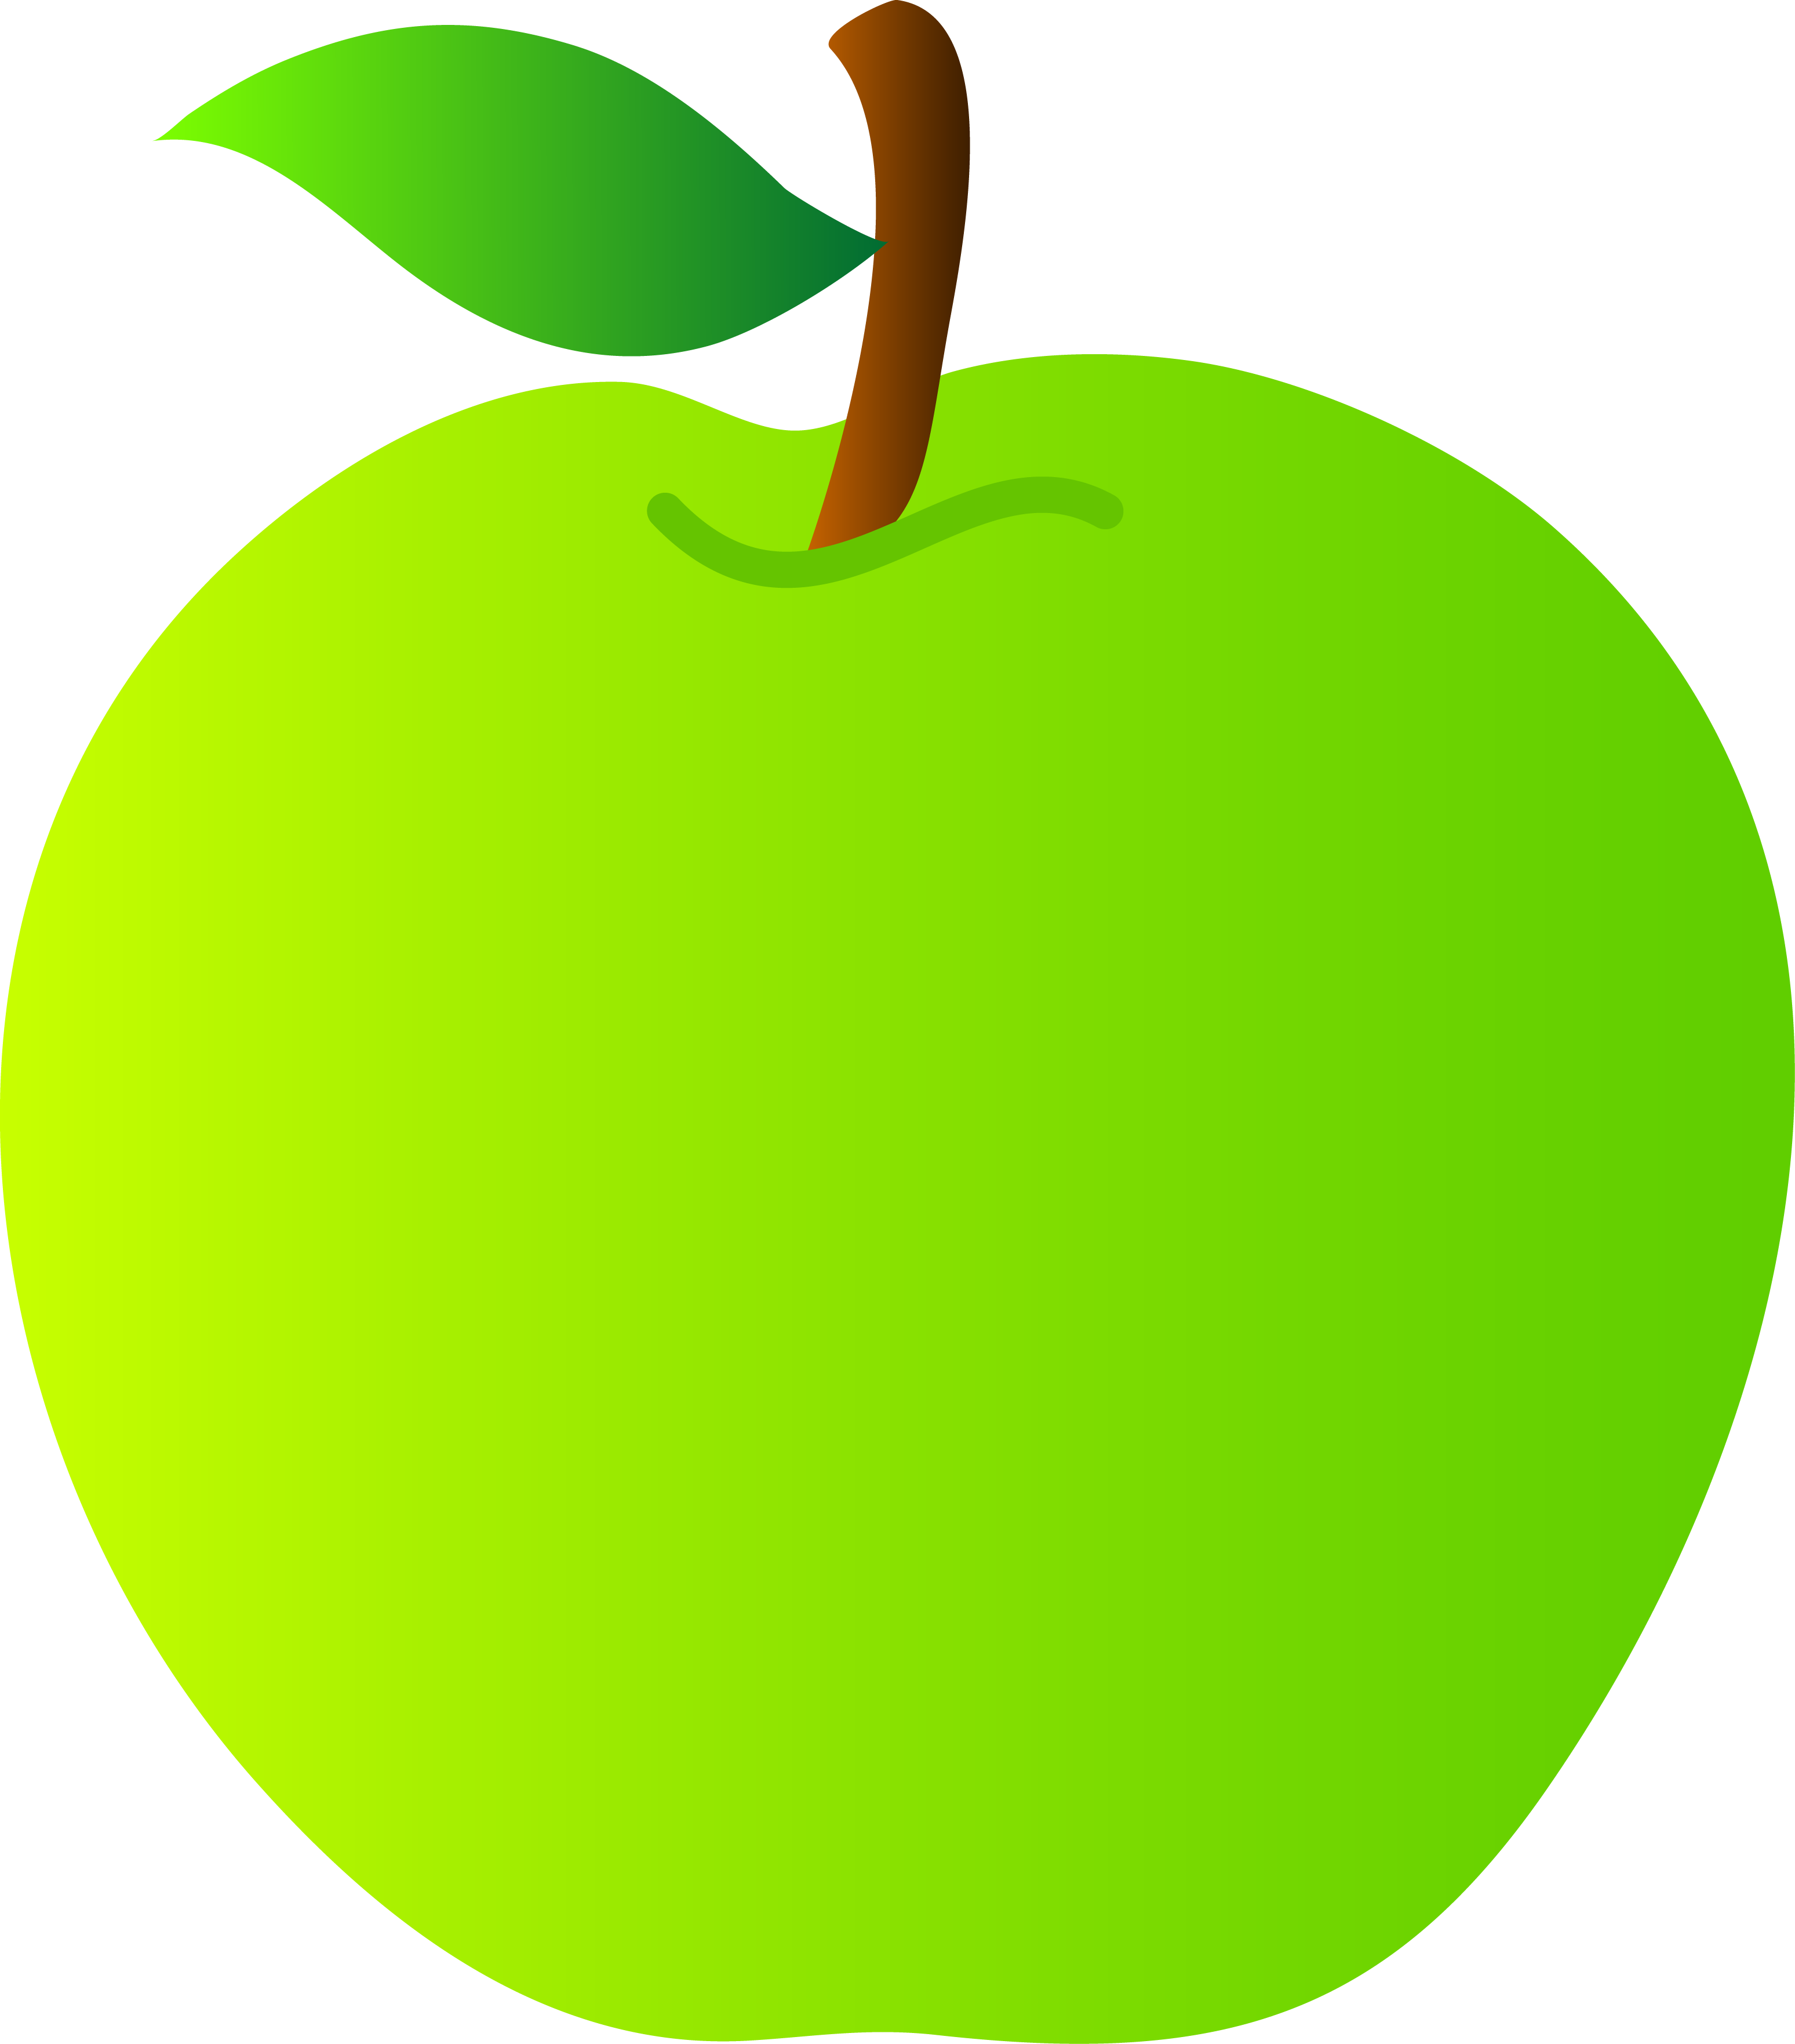 Bitten Apple Drawing at GetDrawings.com | Free for personal use ...